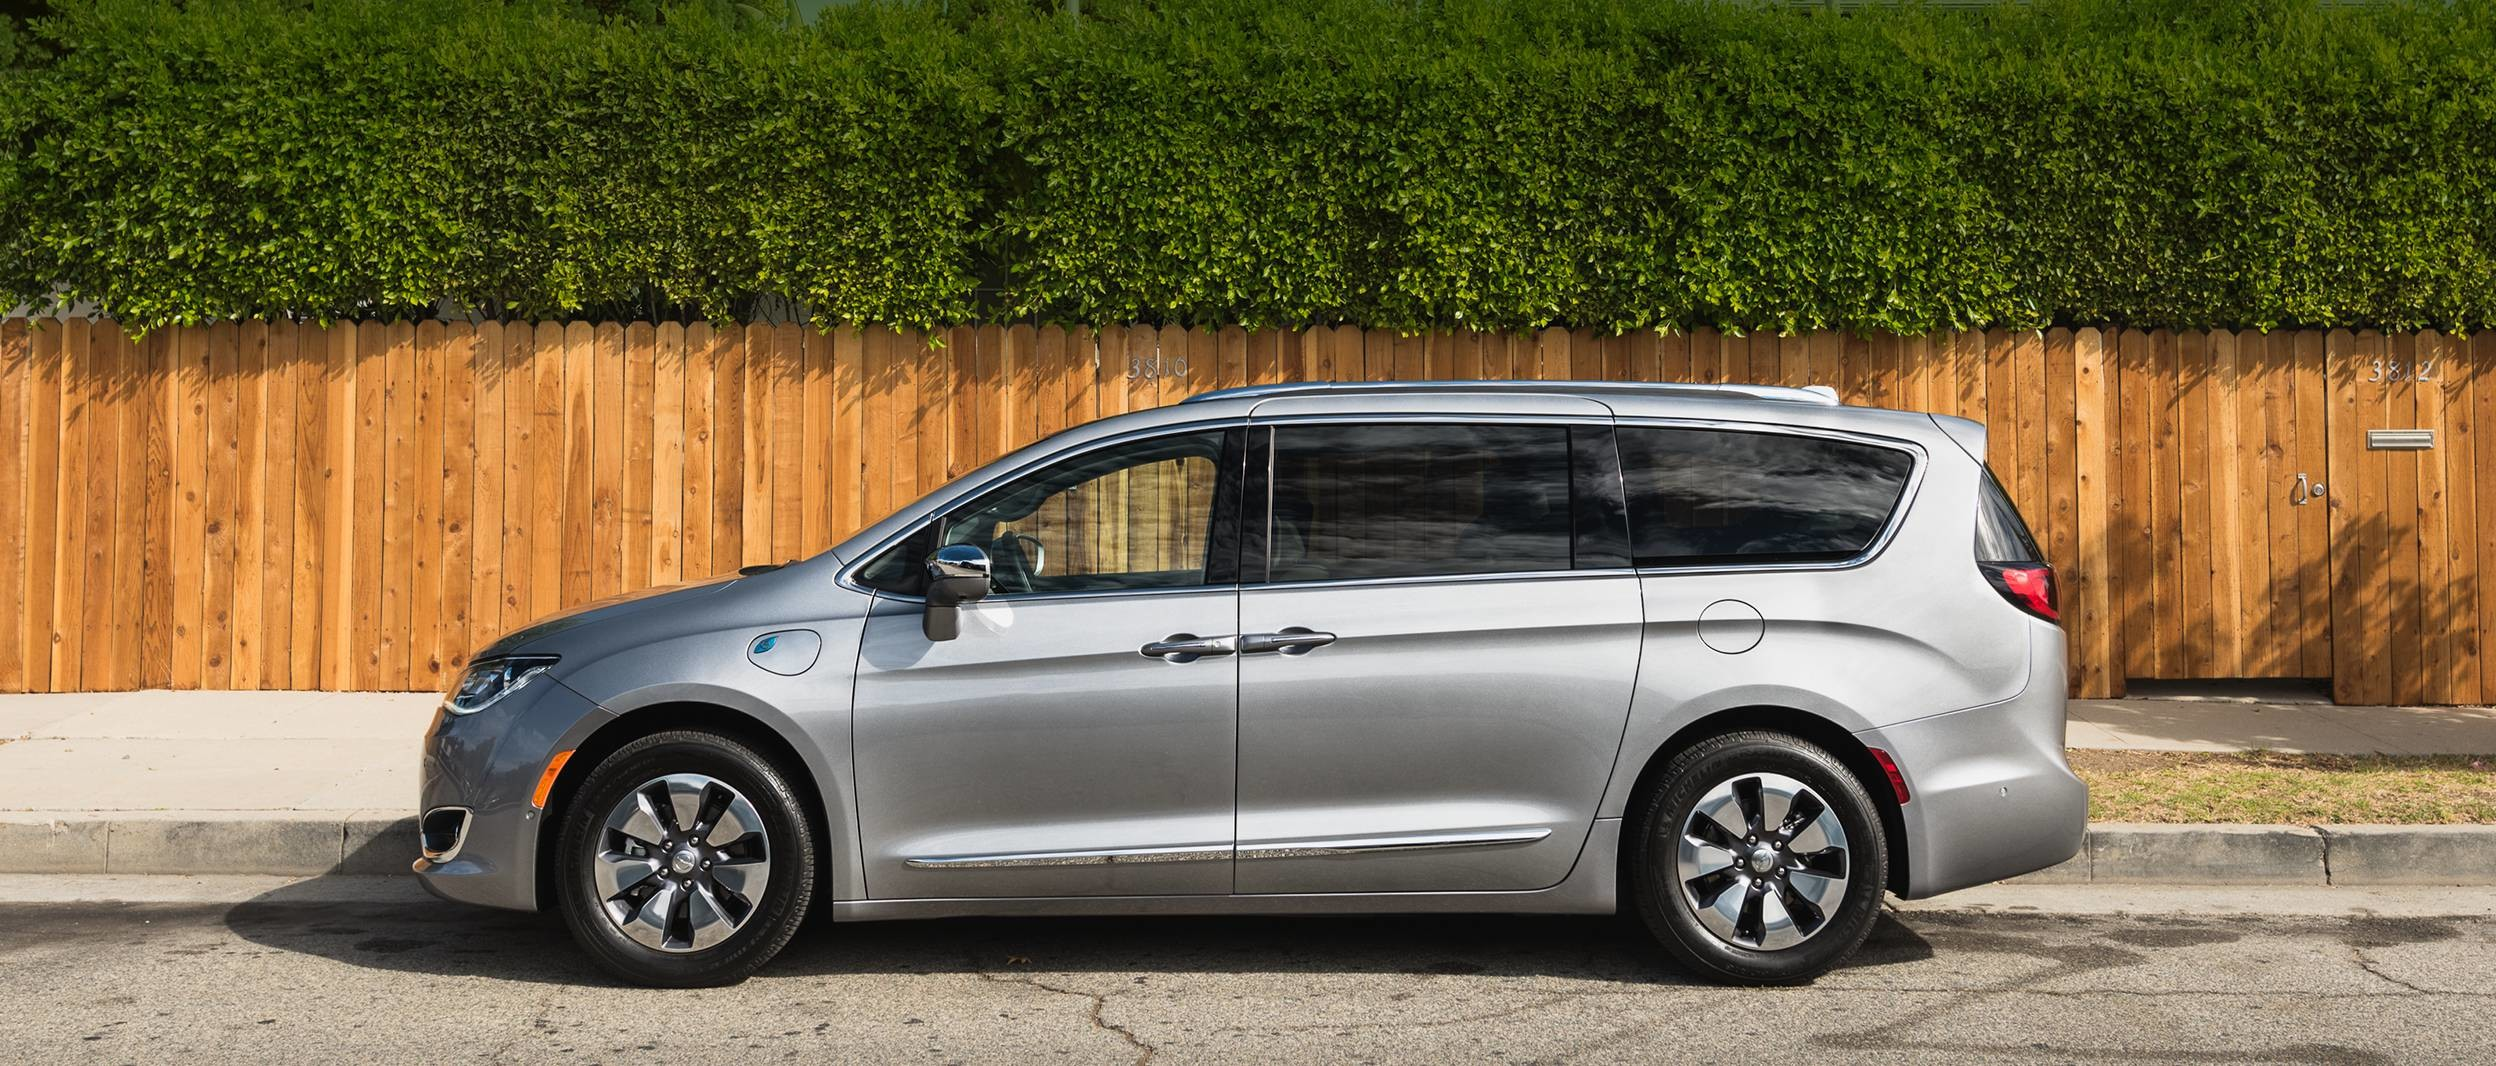 2019 Chrysler Pacifica Hybrid with silver exterior parked